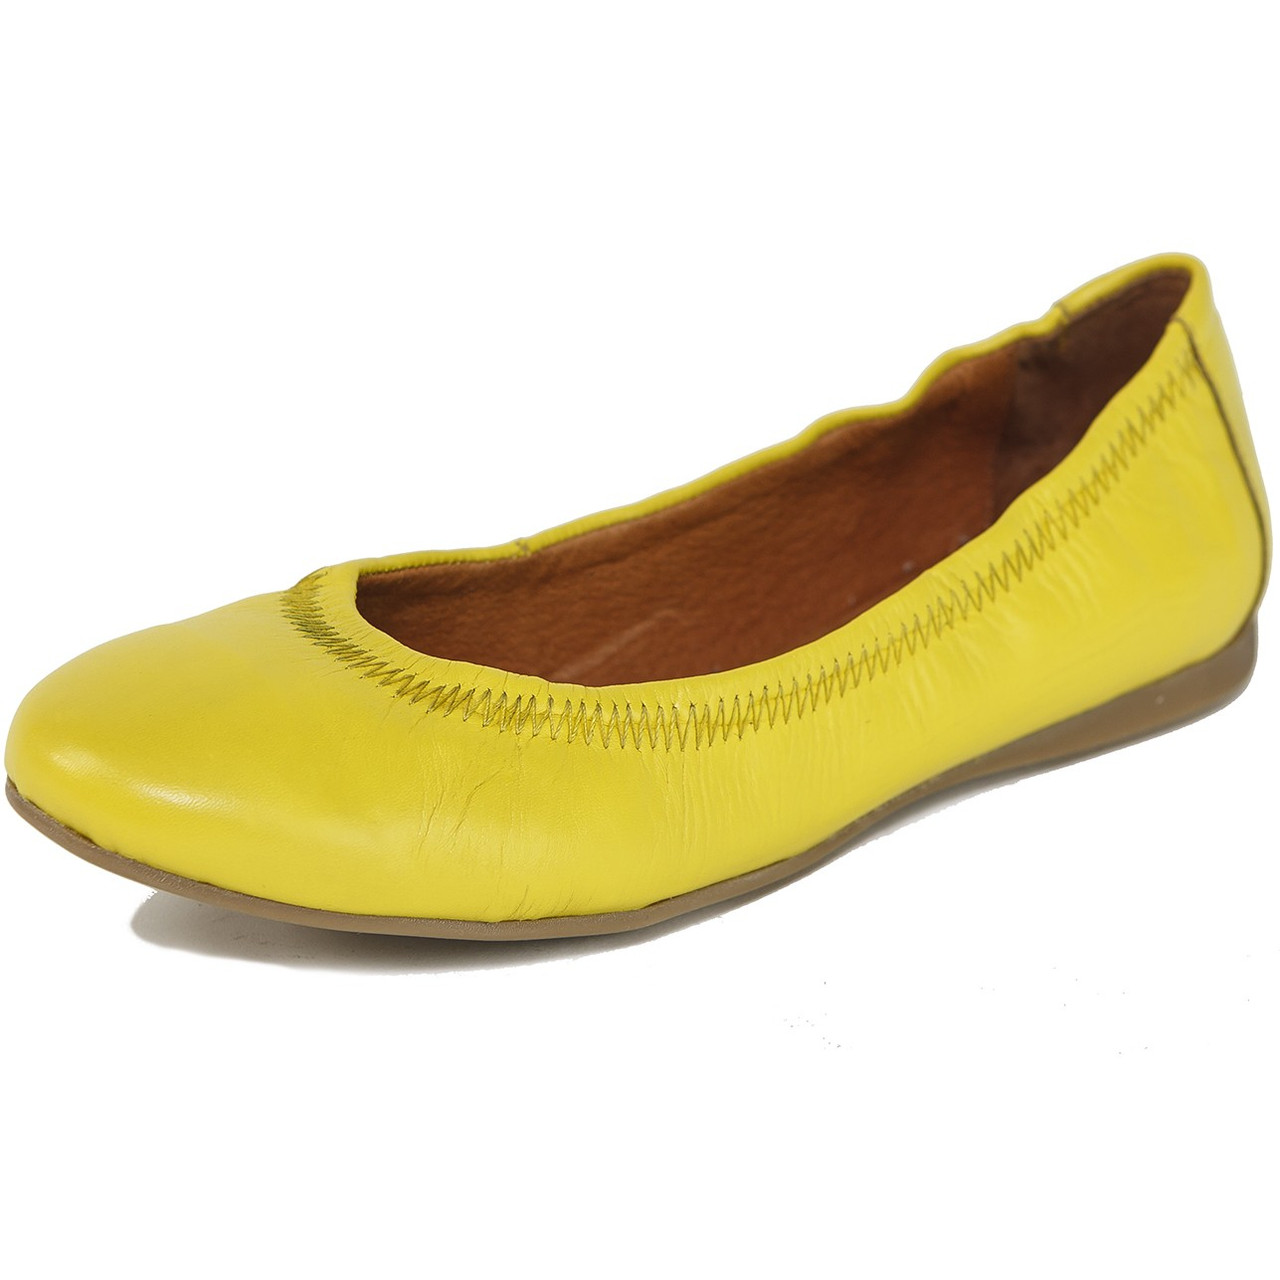 7f262428e Alpine Swiss Womens Shoes Ballet Flats Genuine European Leather ...